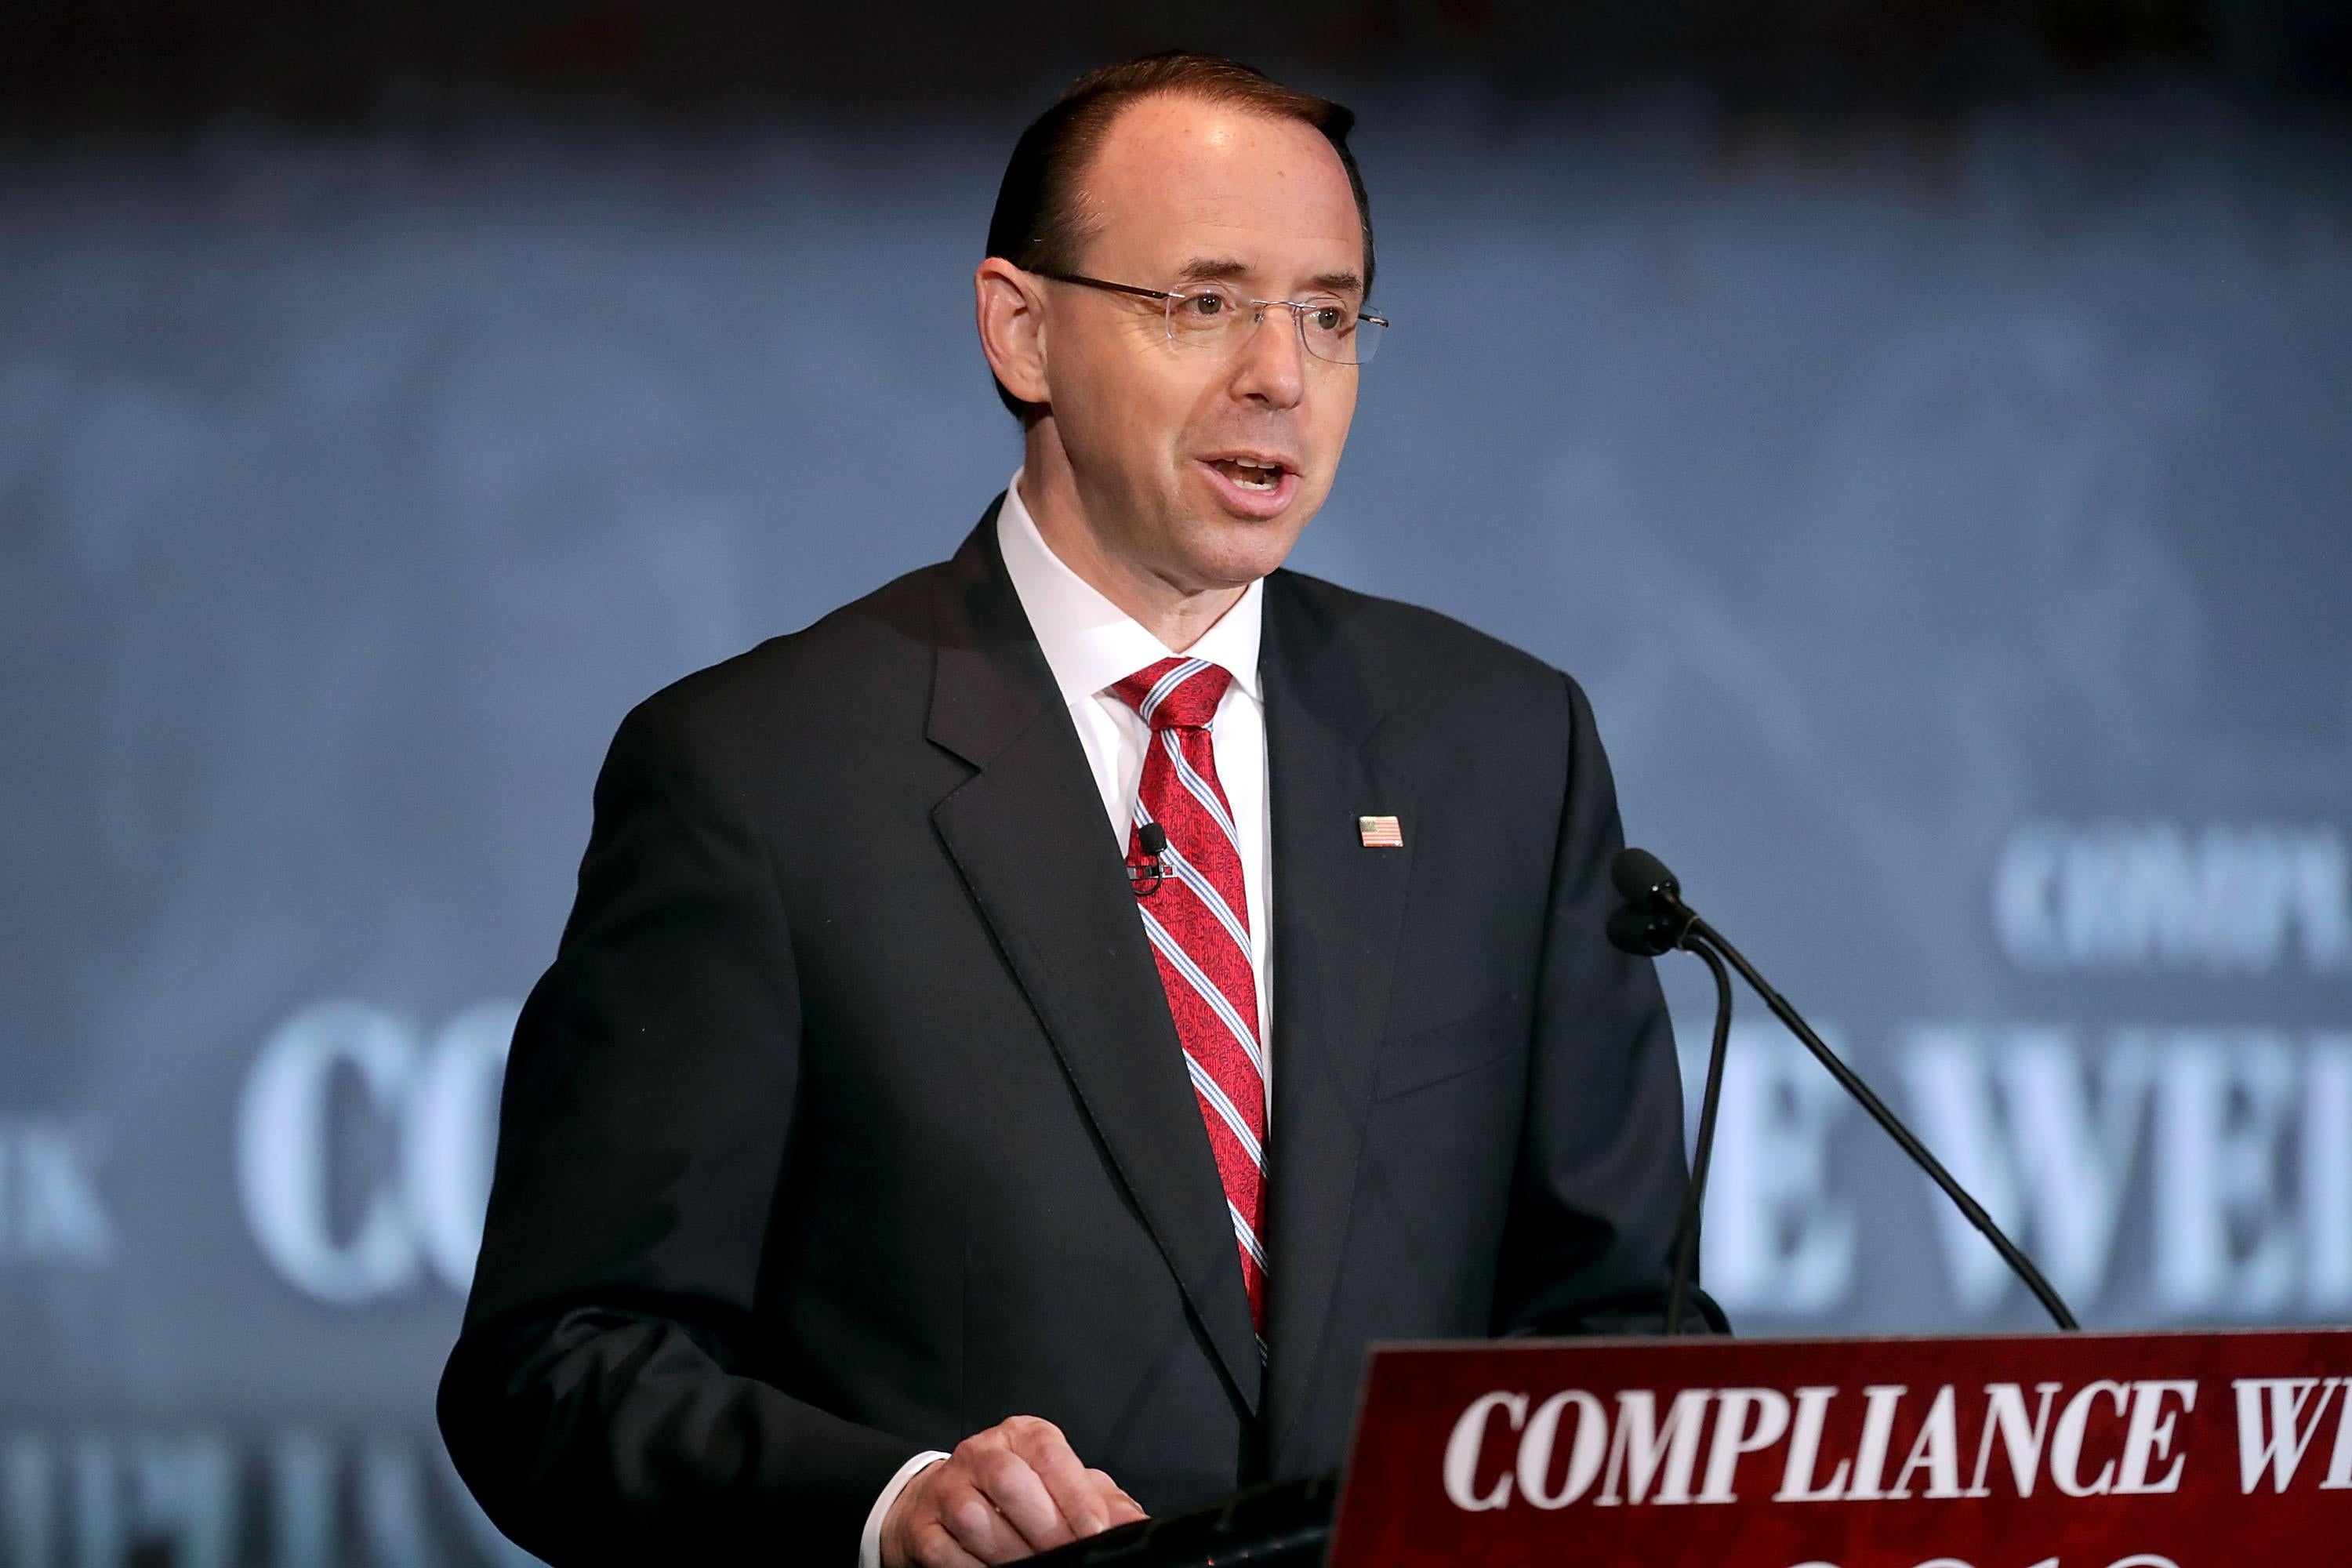 Rod Rosenstein stands at a podium.